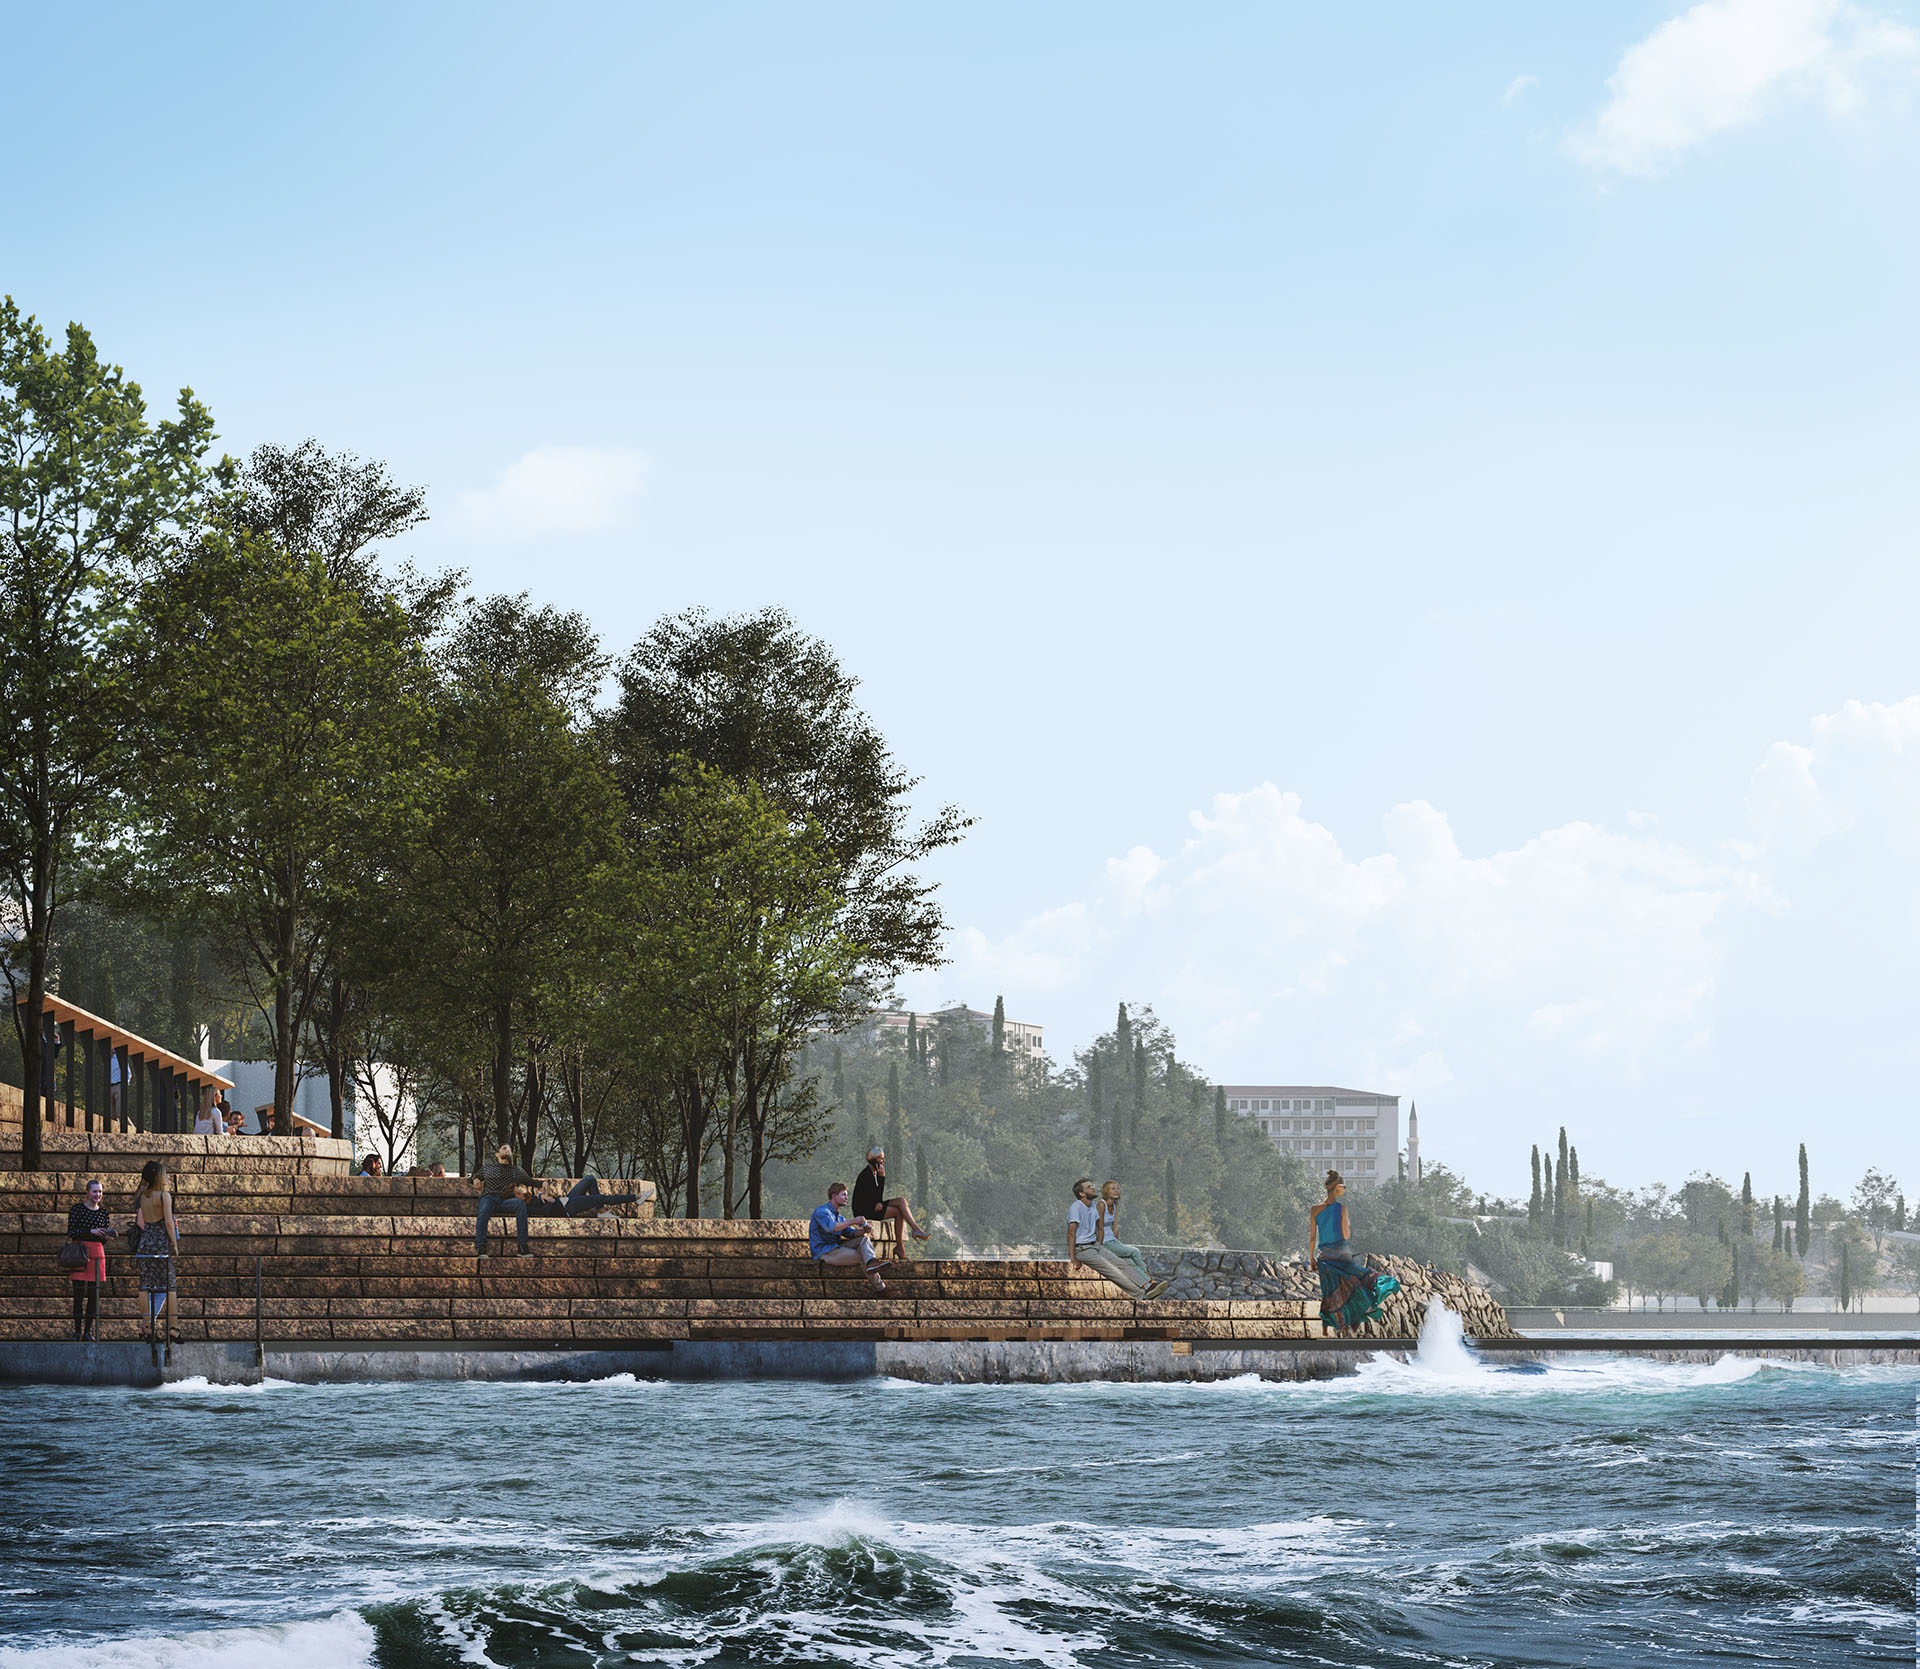 render_ivabox_CAPS_istanbul_salacak_Competition_3